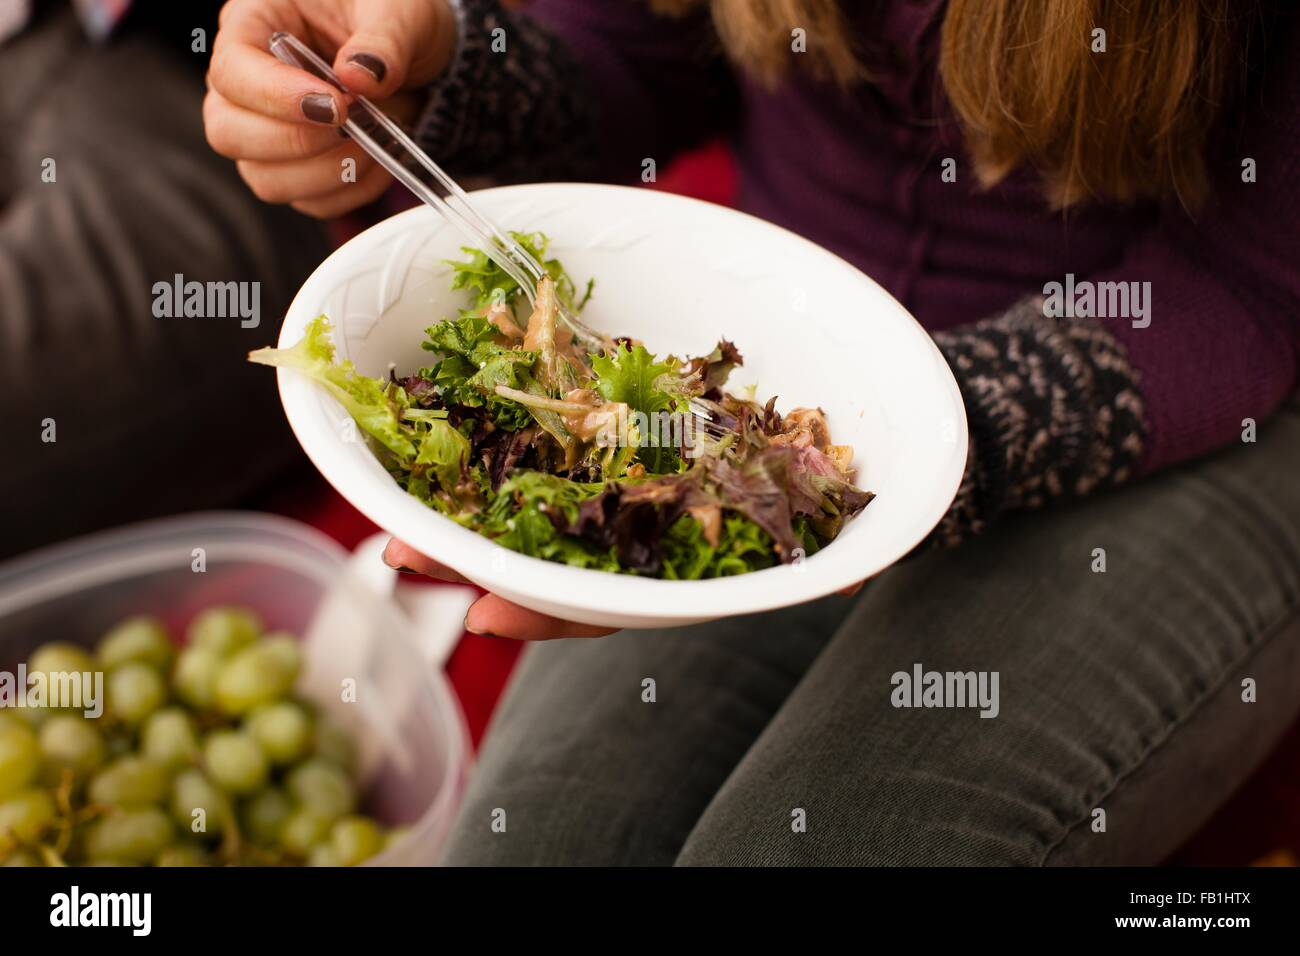 Cropped shot of young woman eating salad pique-nique Photo Stock